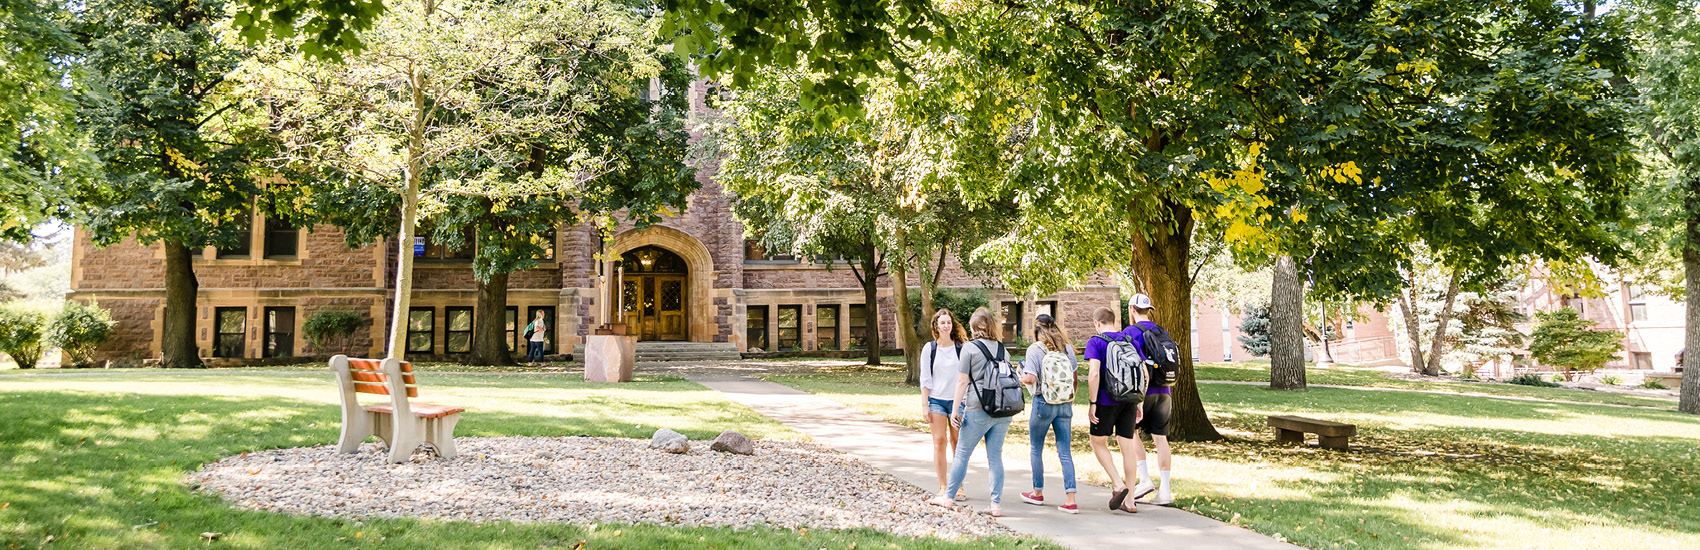 a sunny campus day outside Jorden hall on the quad with five students walking to class